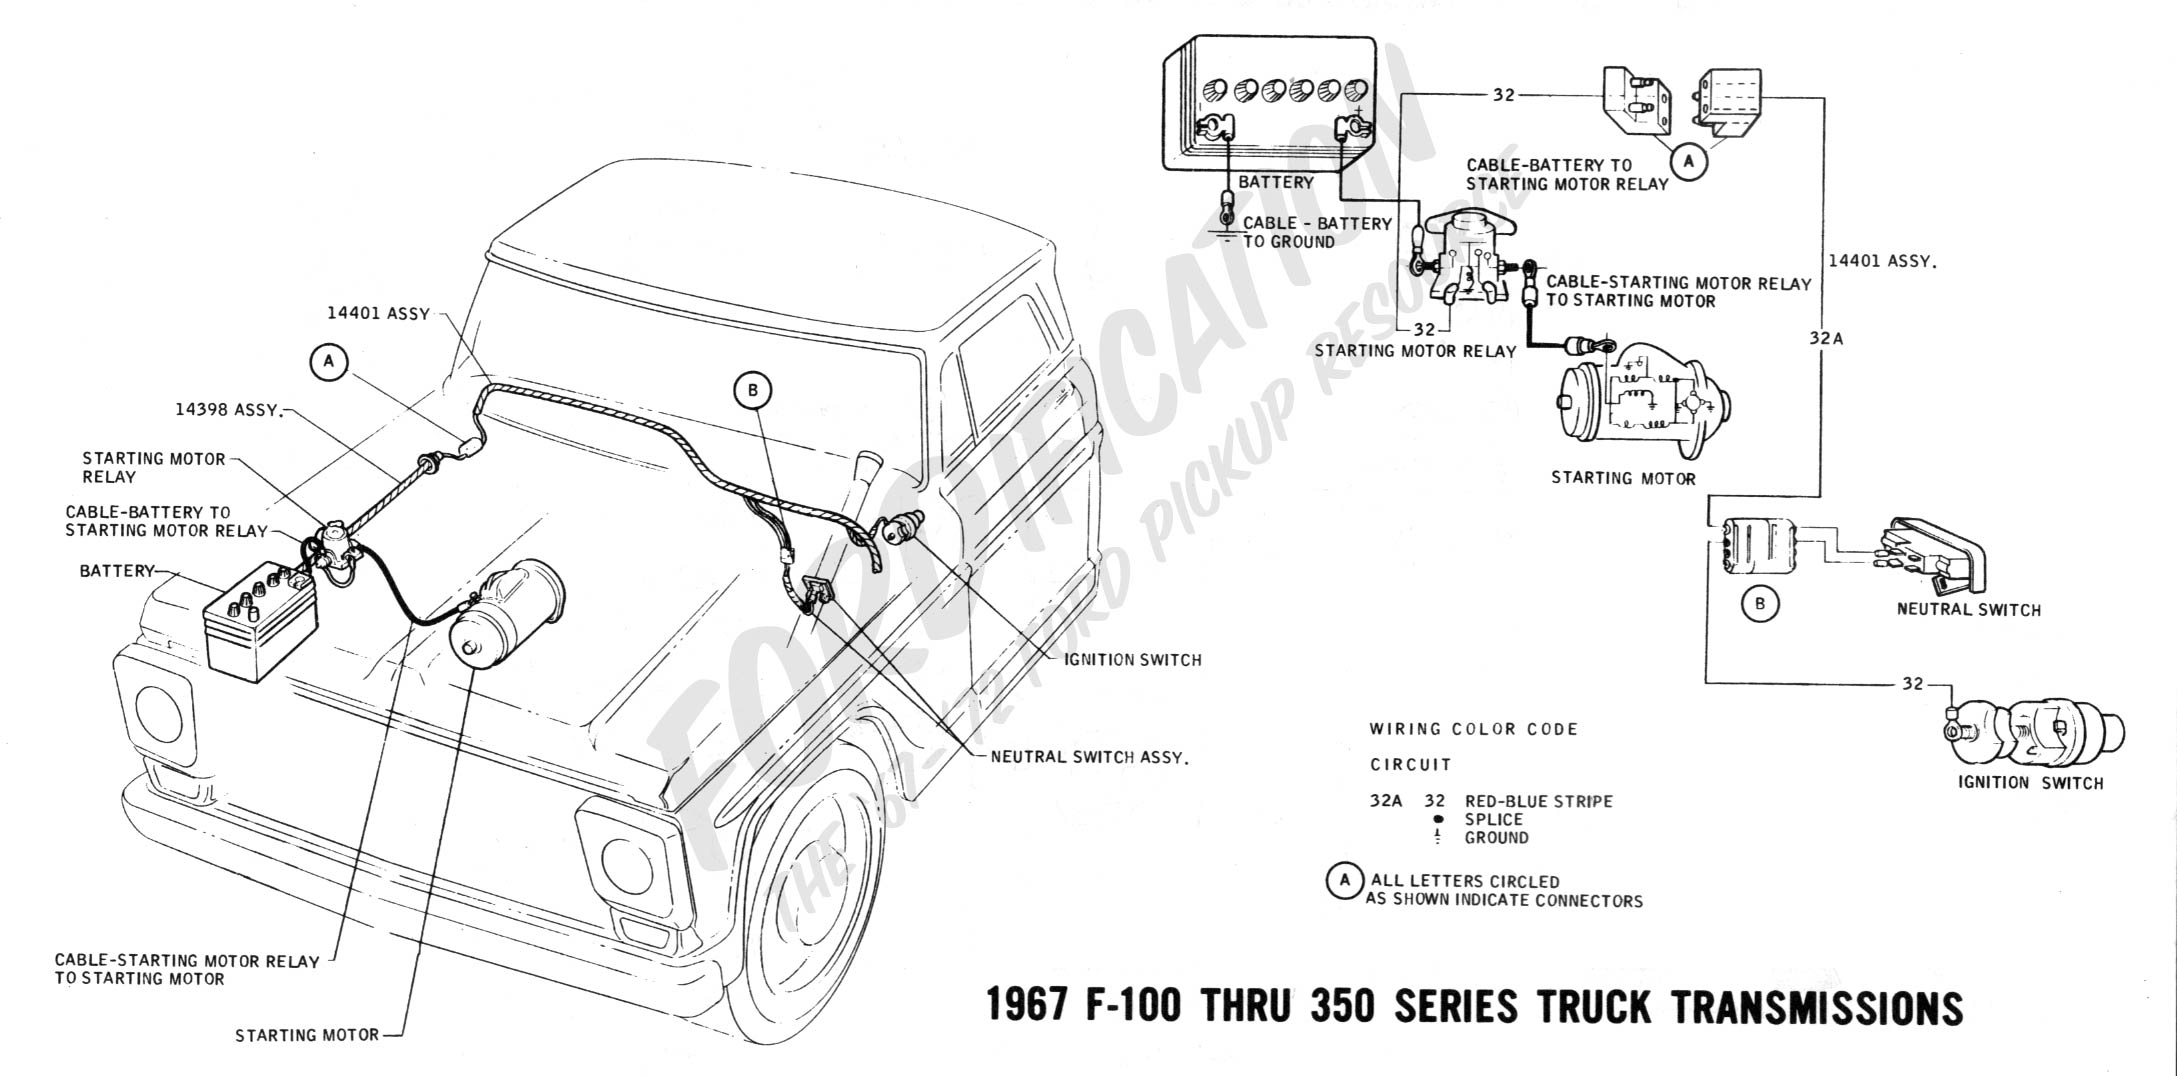 wiring 1967trucktranny 1978 ford starter solenoid wiring diagram circuit and schematics 1978 ford starter solenoid wiring diagram at alyssarenee.co